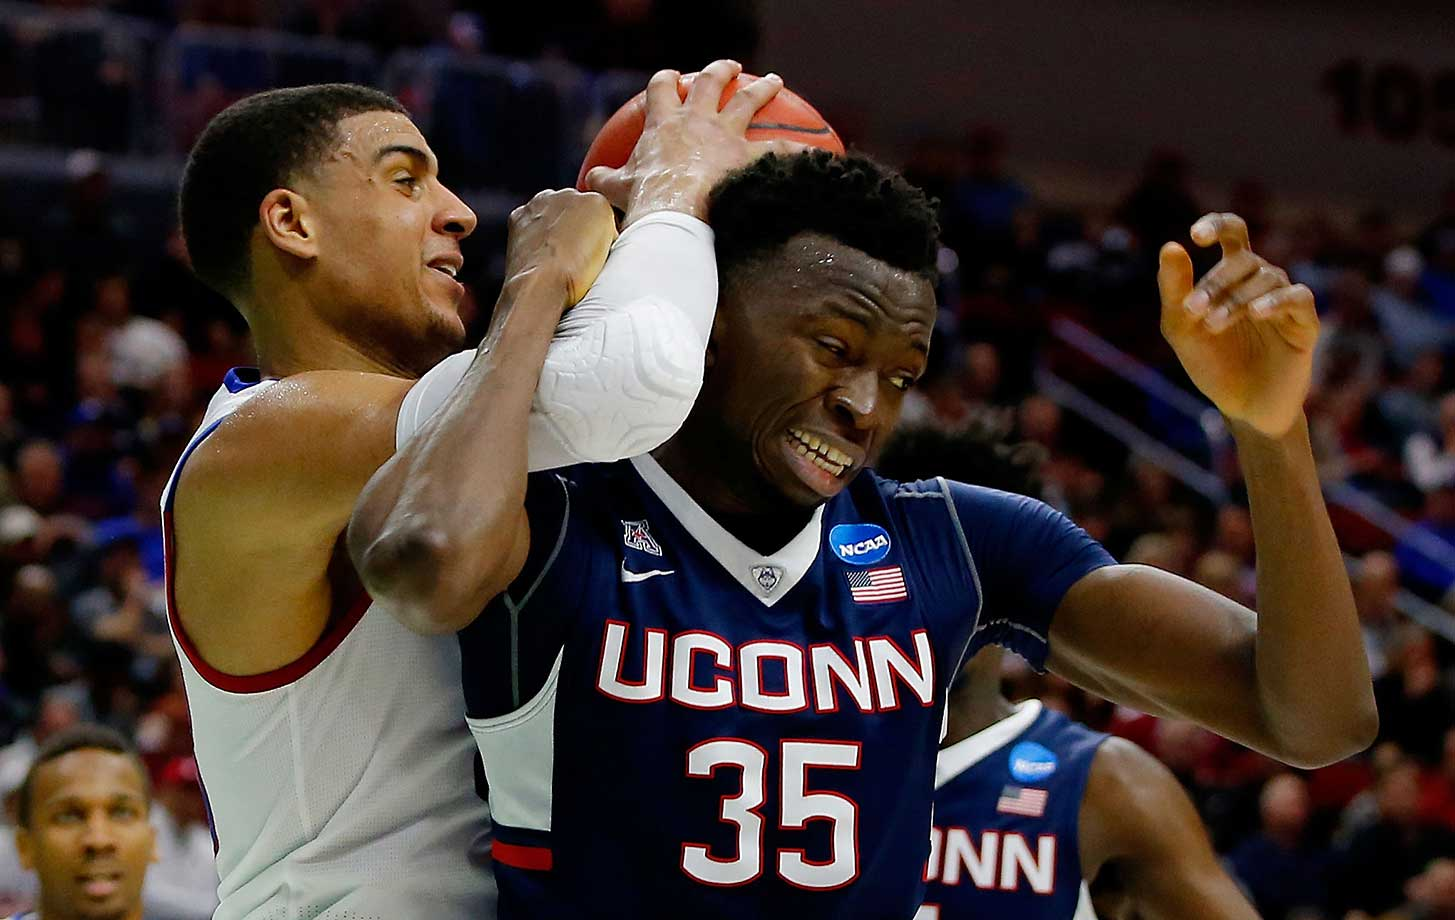 Landen Lucas of Kansas fouls Amida Brimah of Connecticut in a game in which the Jayhawks won 73-61.